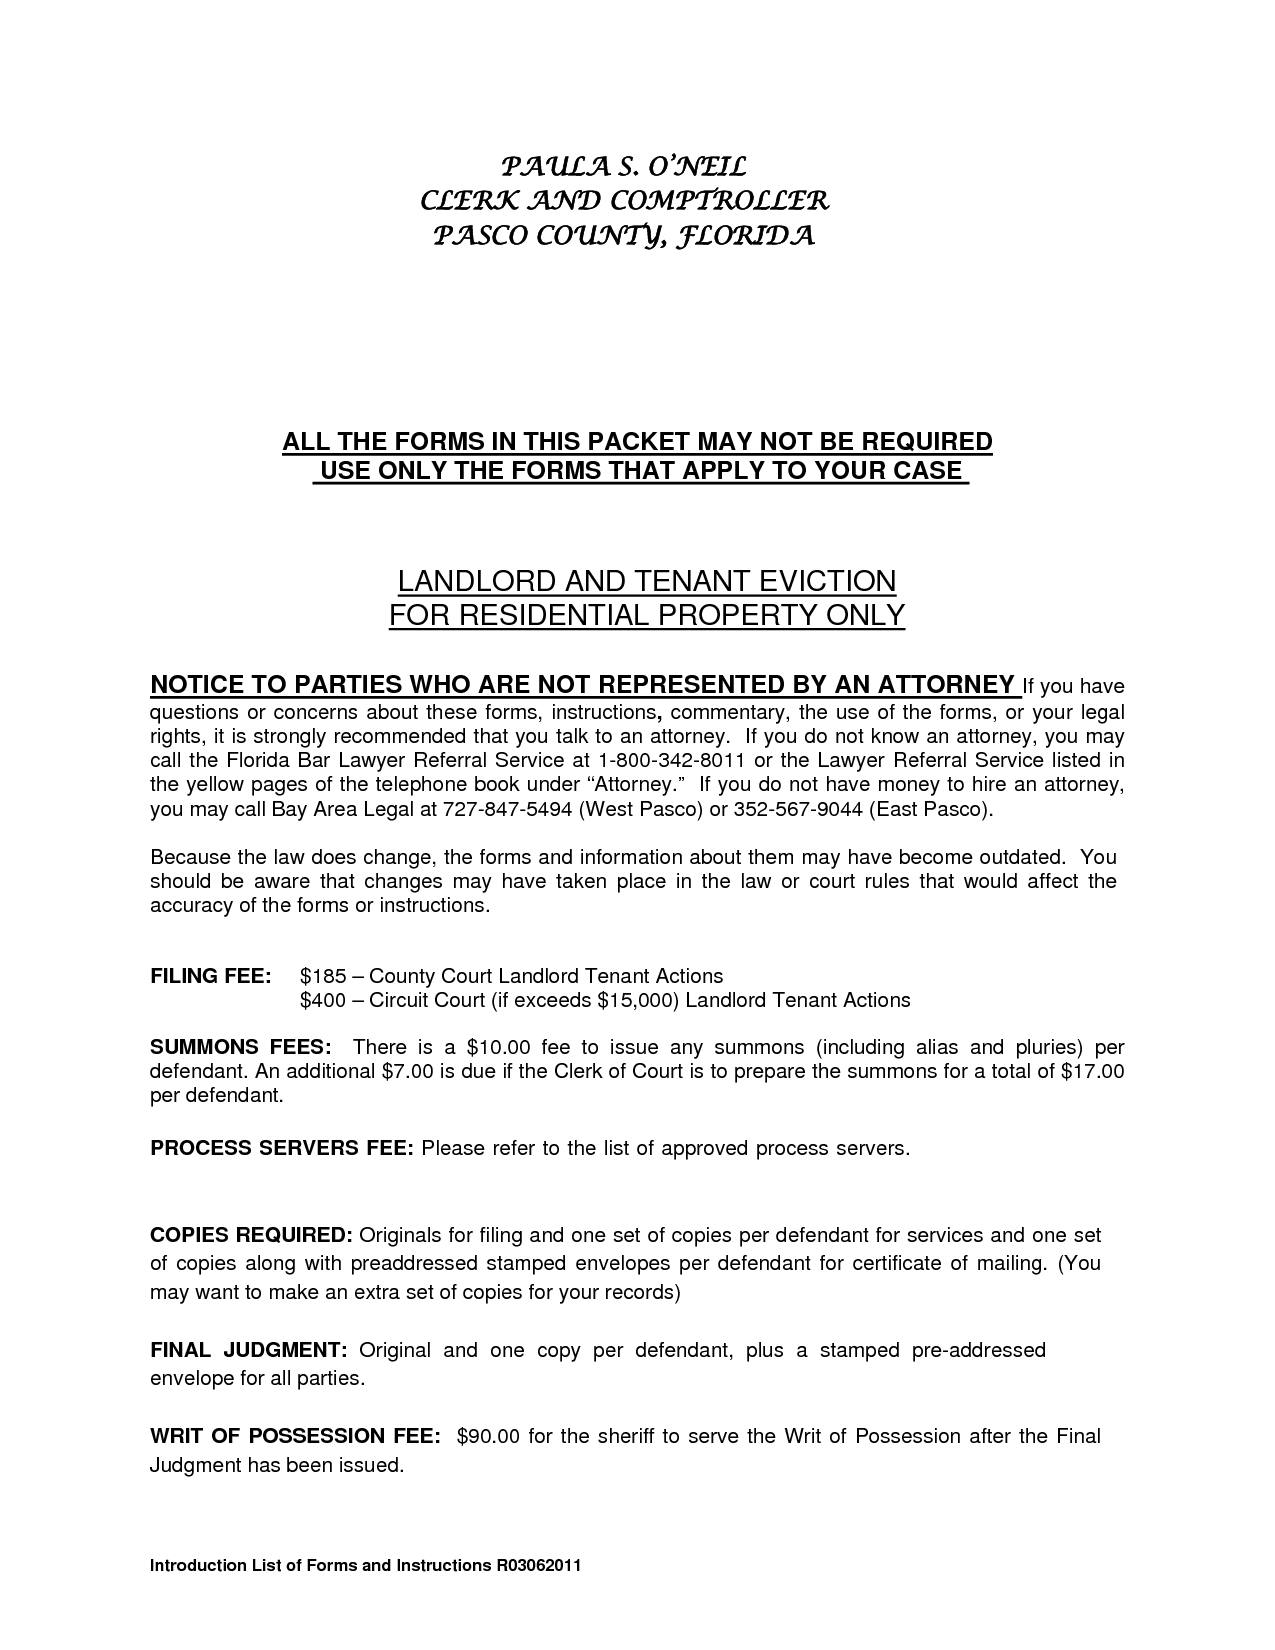 Residential Landlord Tenant Eviction Notice Form by ere72906 ...